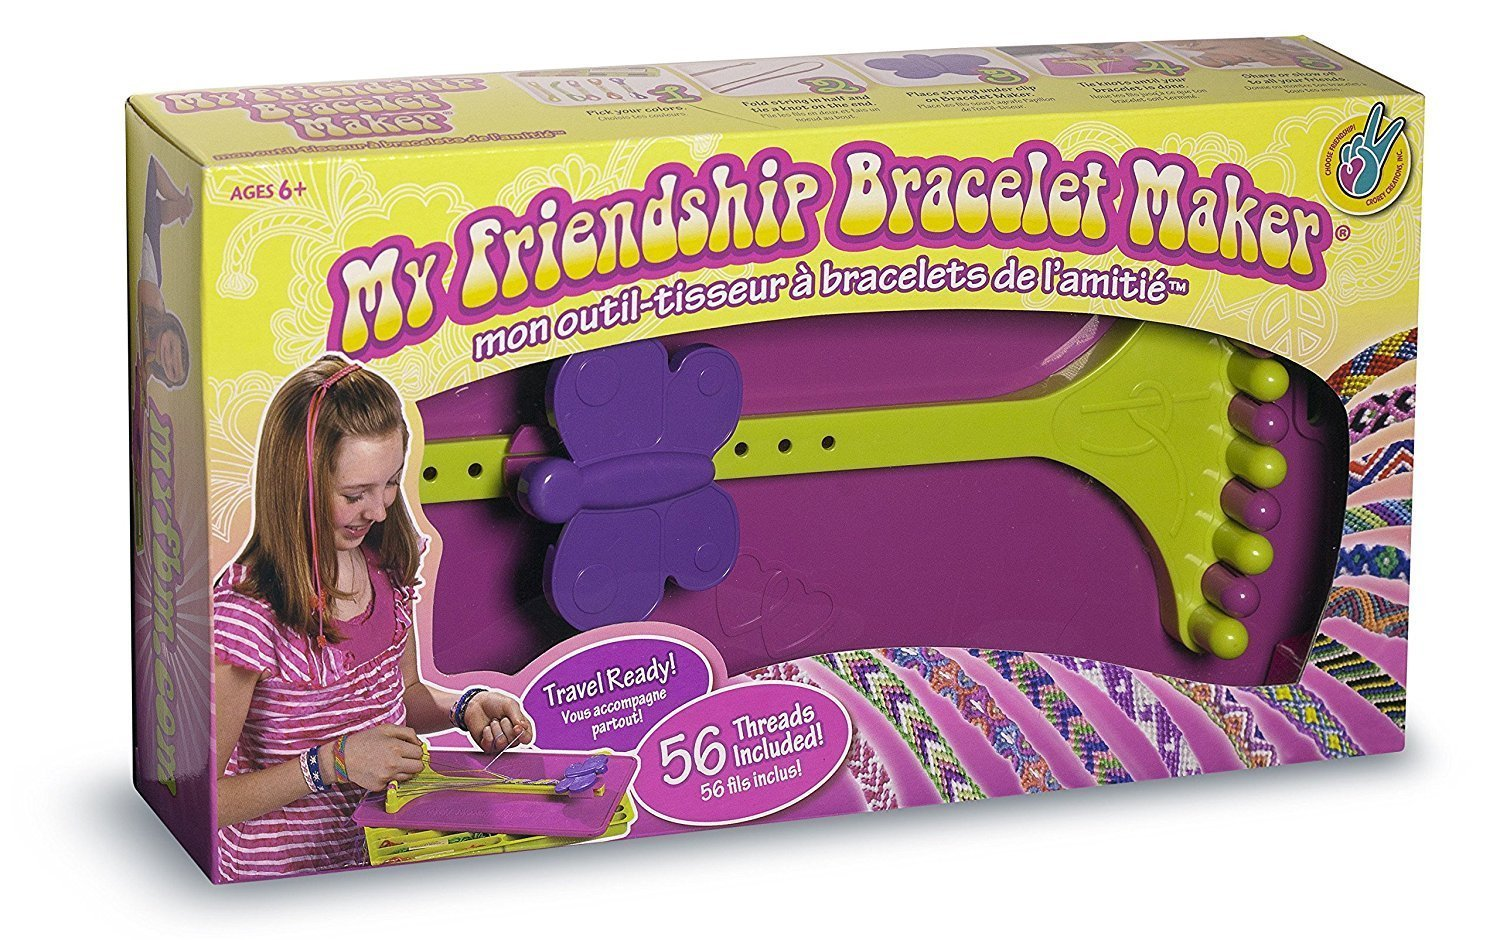 DMC - My Friendship Bracelet Maker Bracelet Making Kit product image